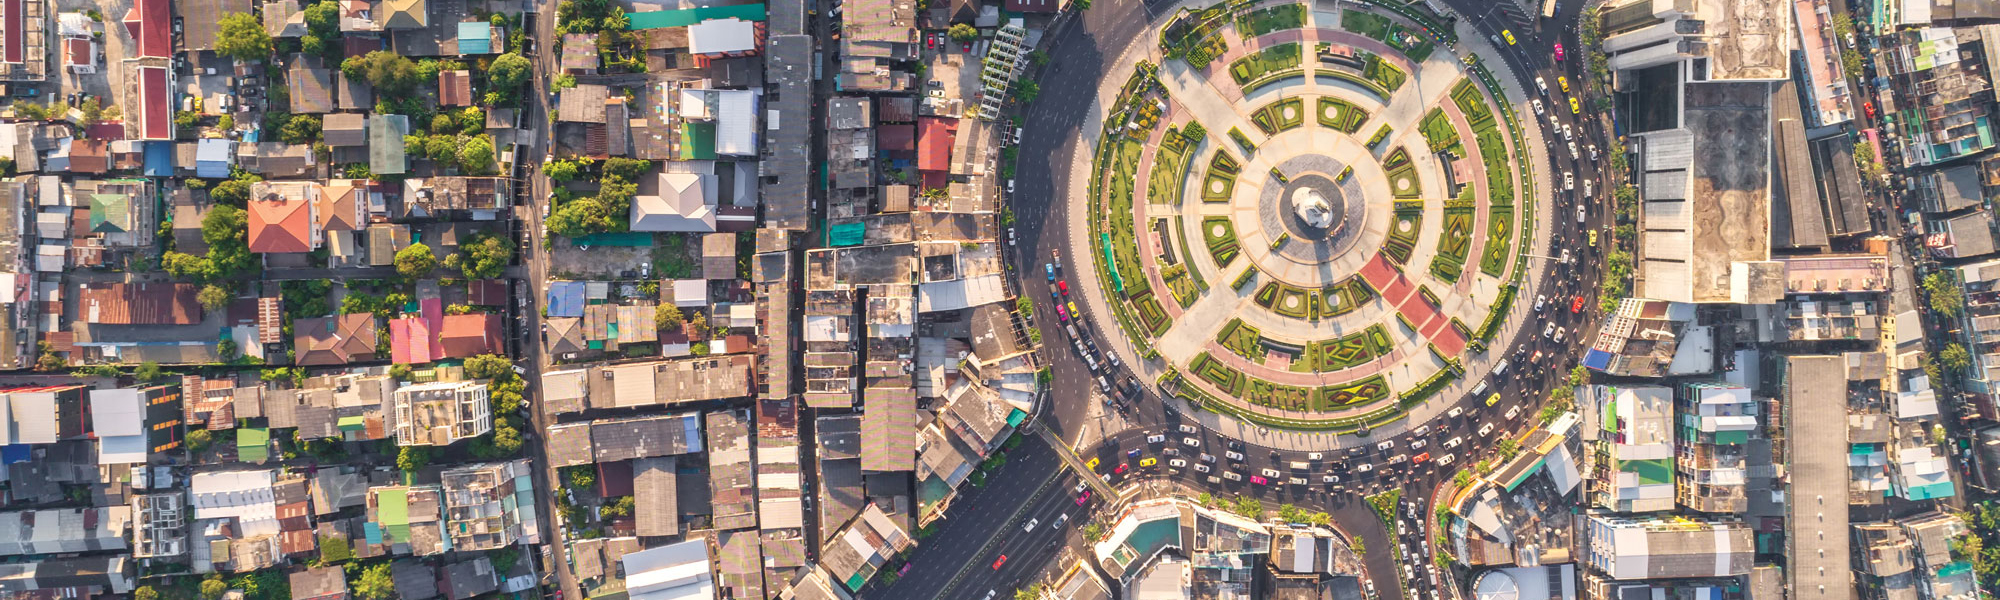 Aerial view of a roundabout and traffic via Shutterstock